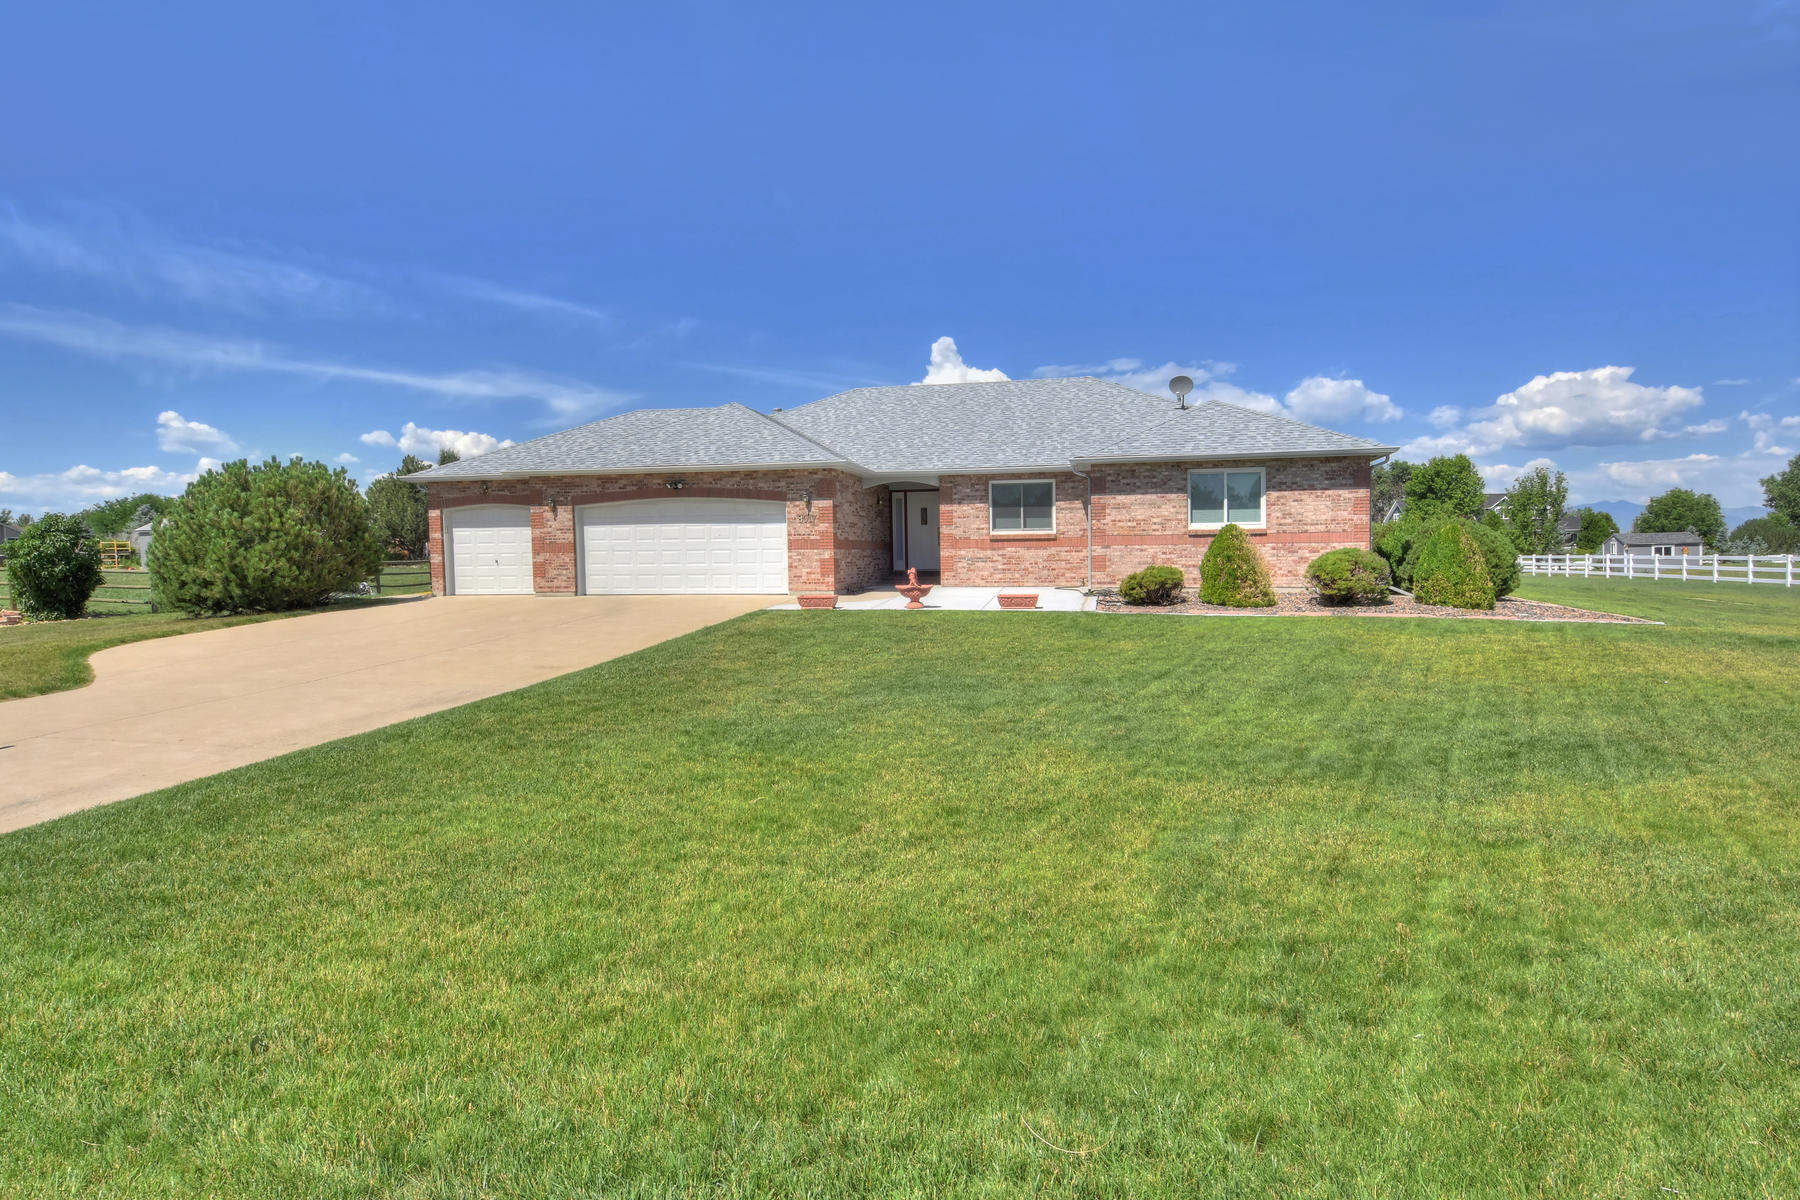 Single Family Homes for Active at Charming and Bright Ranch in Morningside Estates 8017 Sunrise Pl Frederick, Colorado 80516 United States